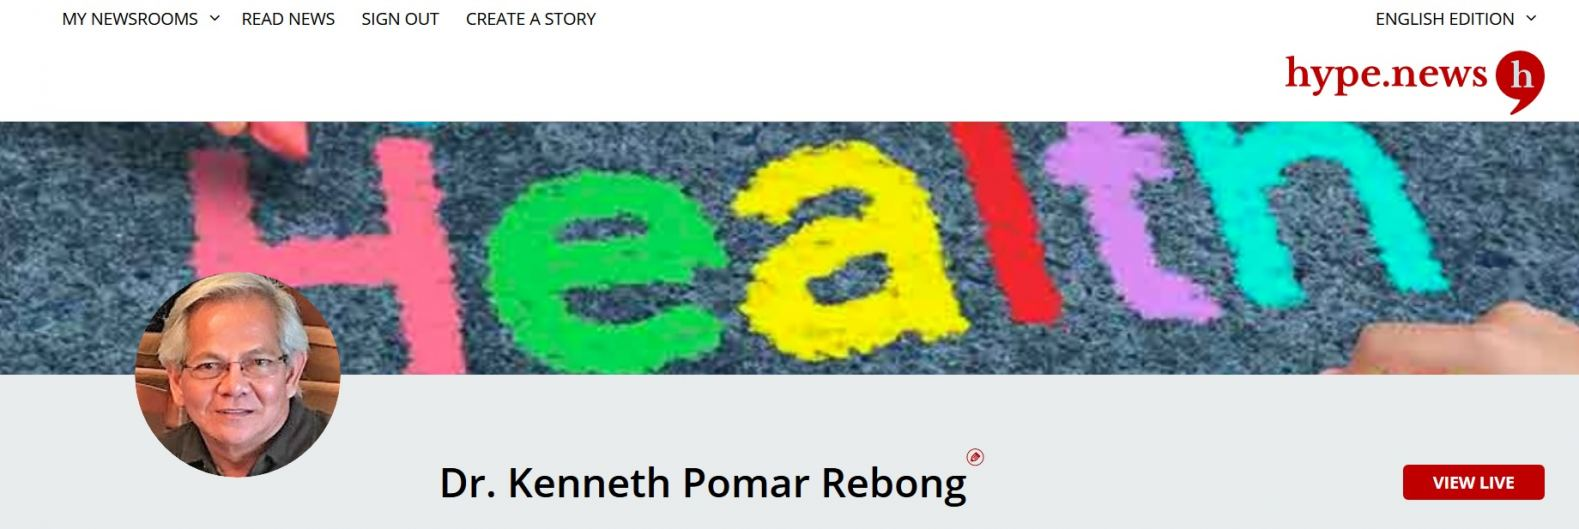 News about Dr Kenneth Pomar Rebong, California pediatrician